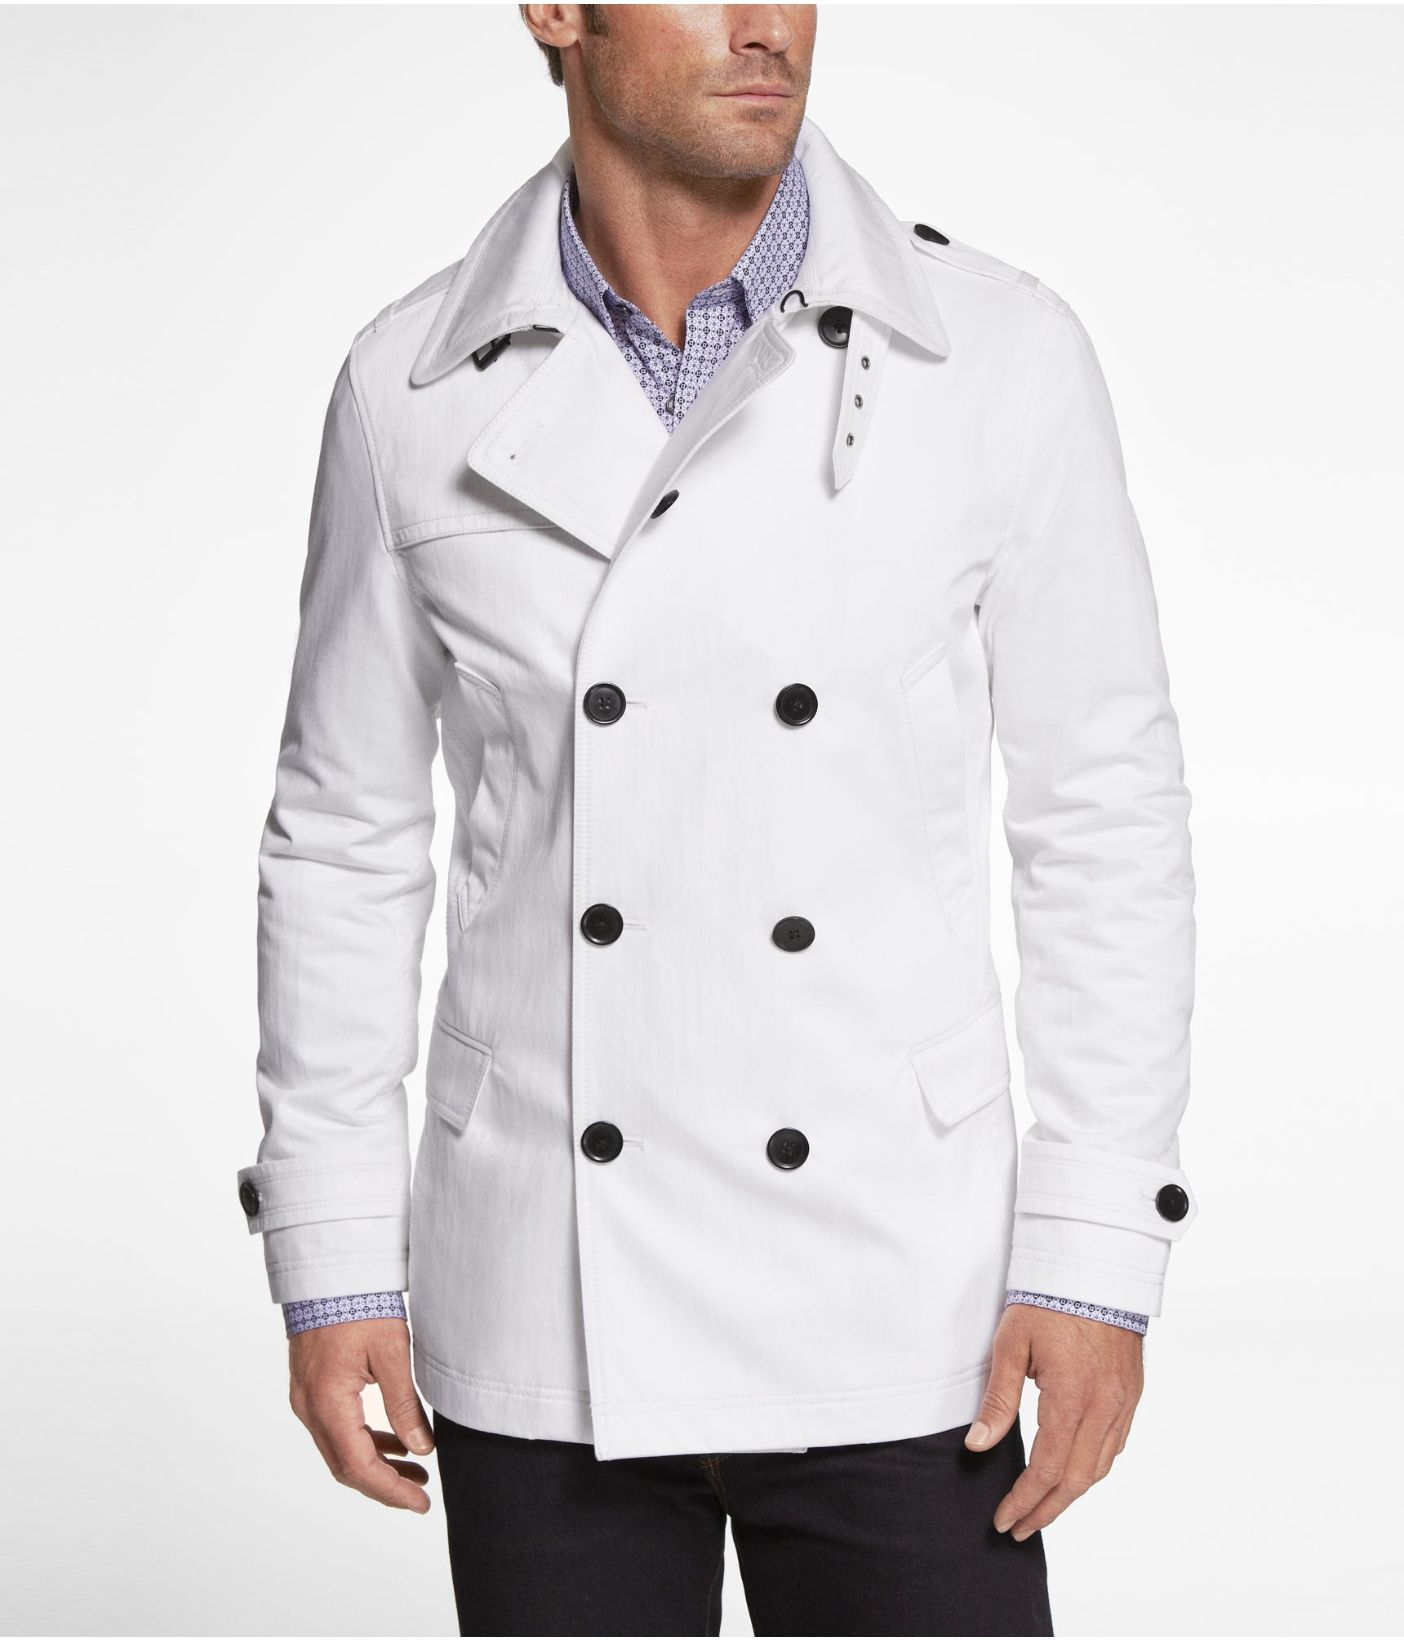 EXPRESS TECH WATER RESISTANT WHITE TRENCH COAT | Express] | Future ...